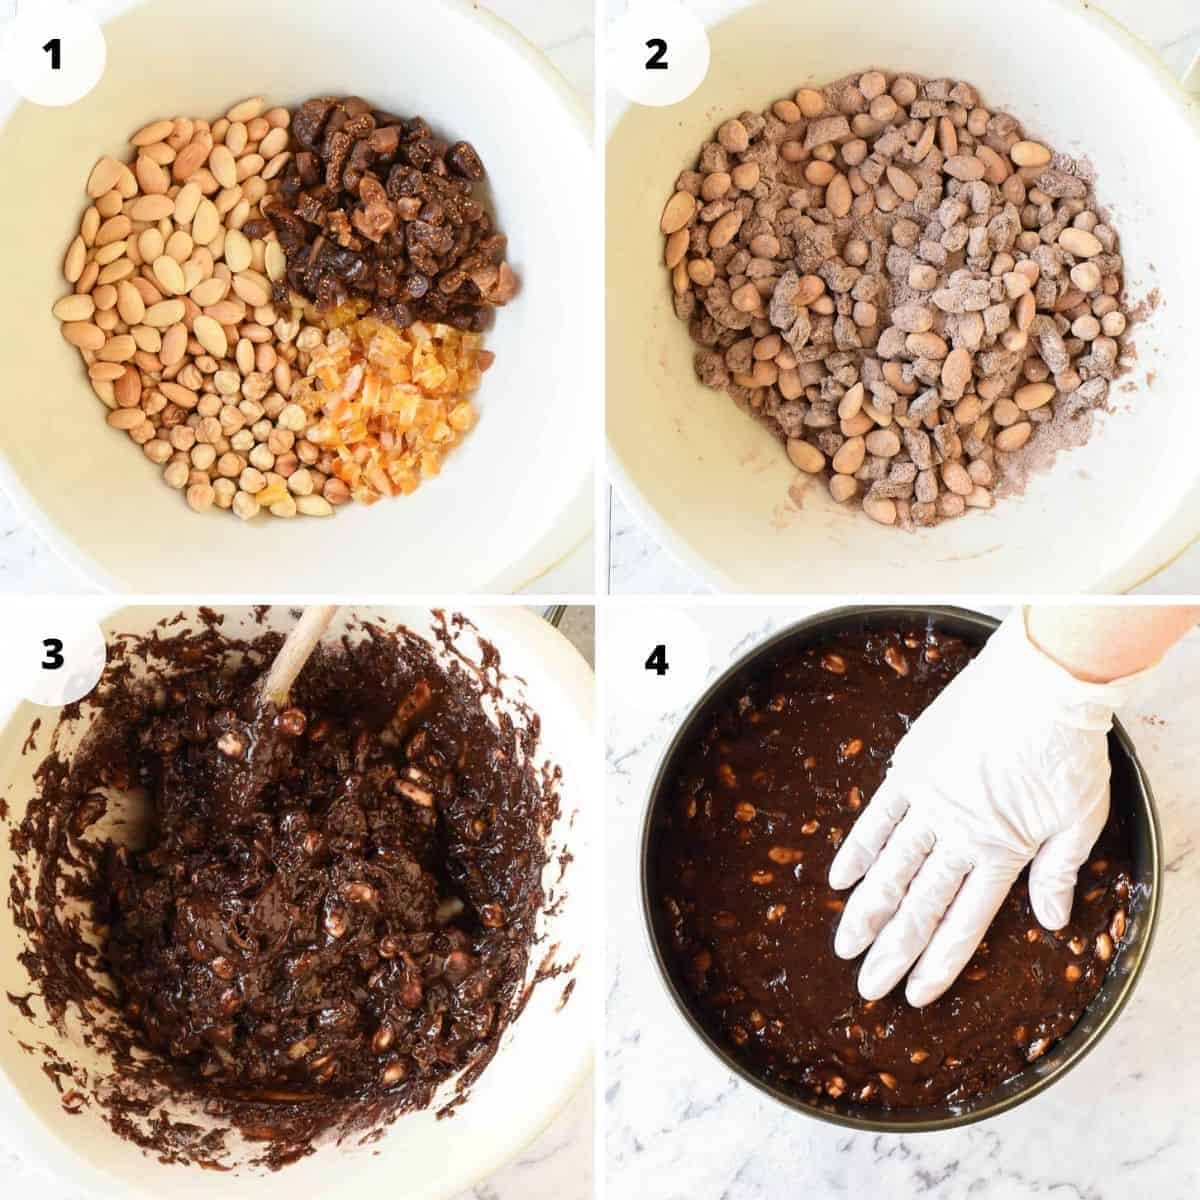 Four images of preparation of panforte - image 1 ingredients in a bowl, image 2 ingredients with added flour, image 3 gooey chocolatey mixture in a bowl image 4 a gloved hand press down on panforte in a cake pan